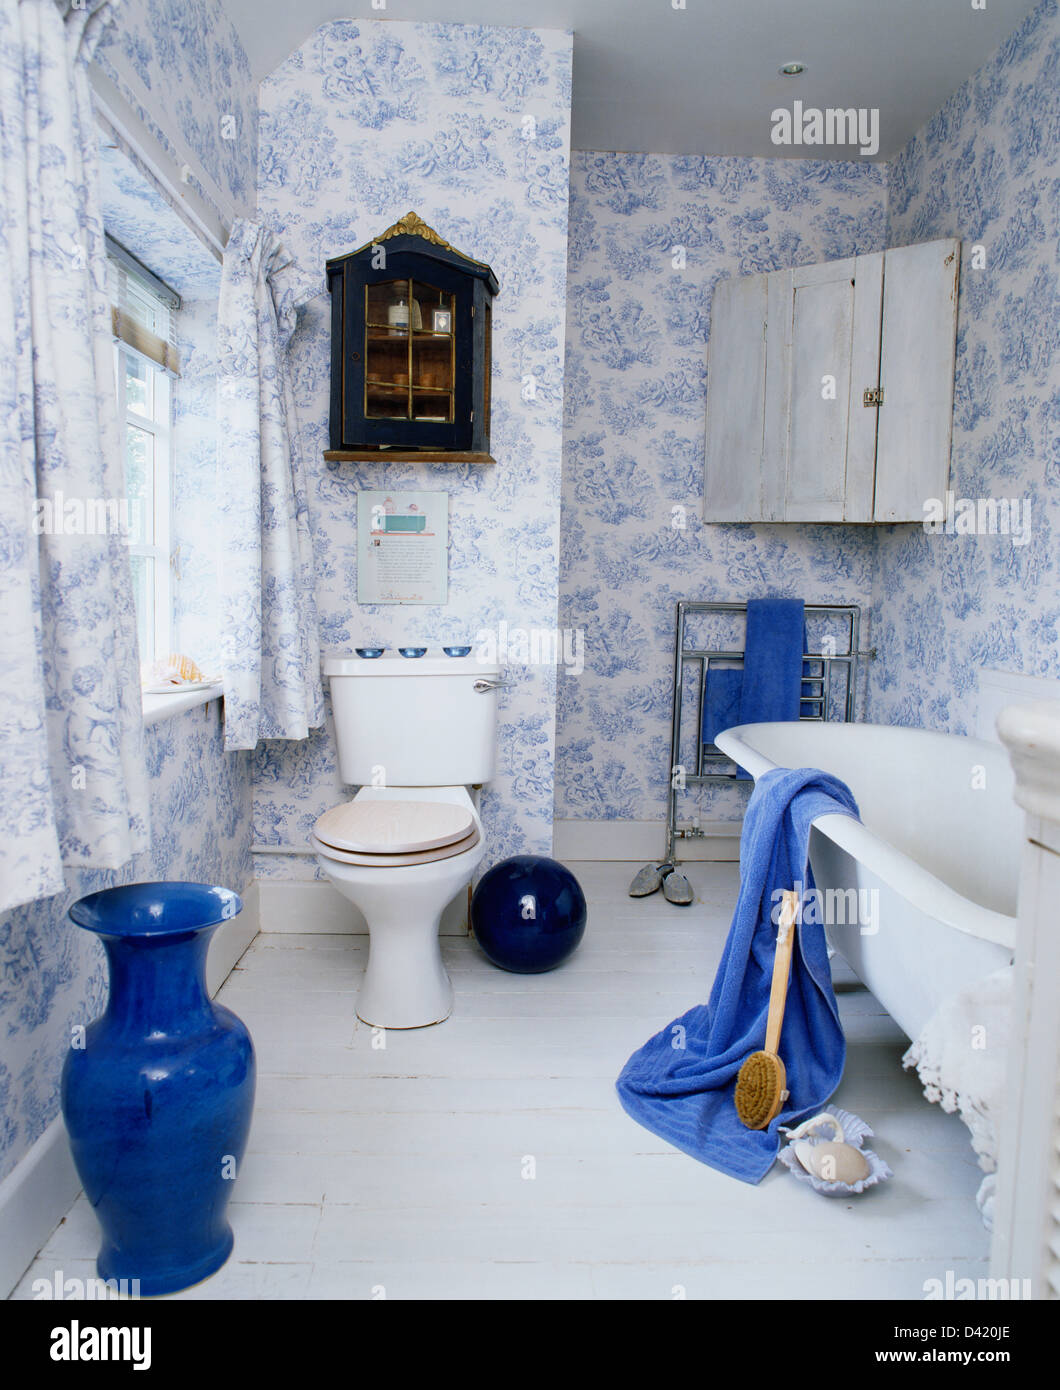 Tall Blue Vase In Country Bathroom With Blue White Toile